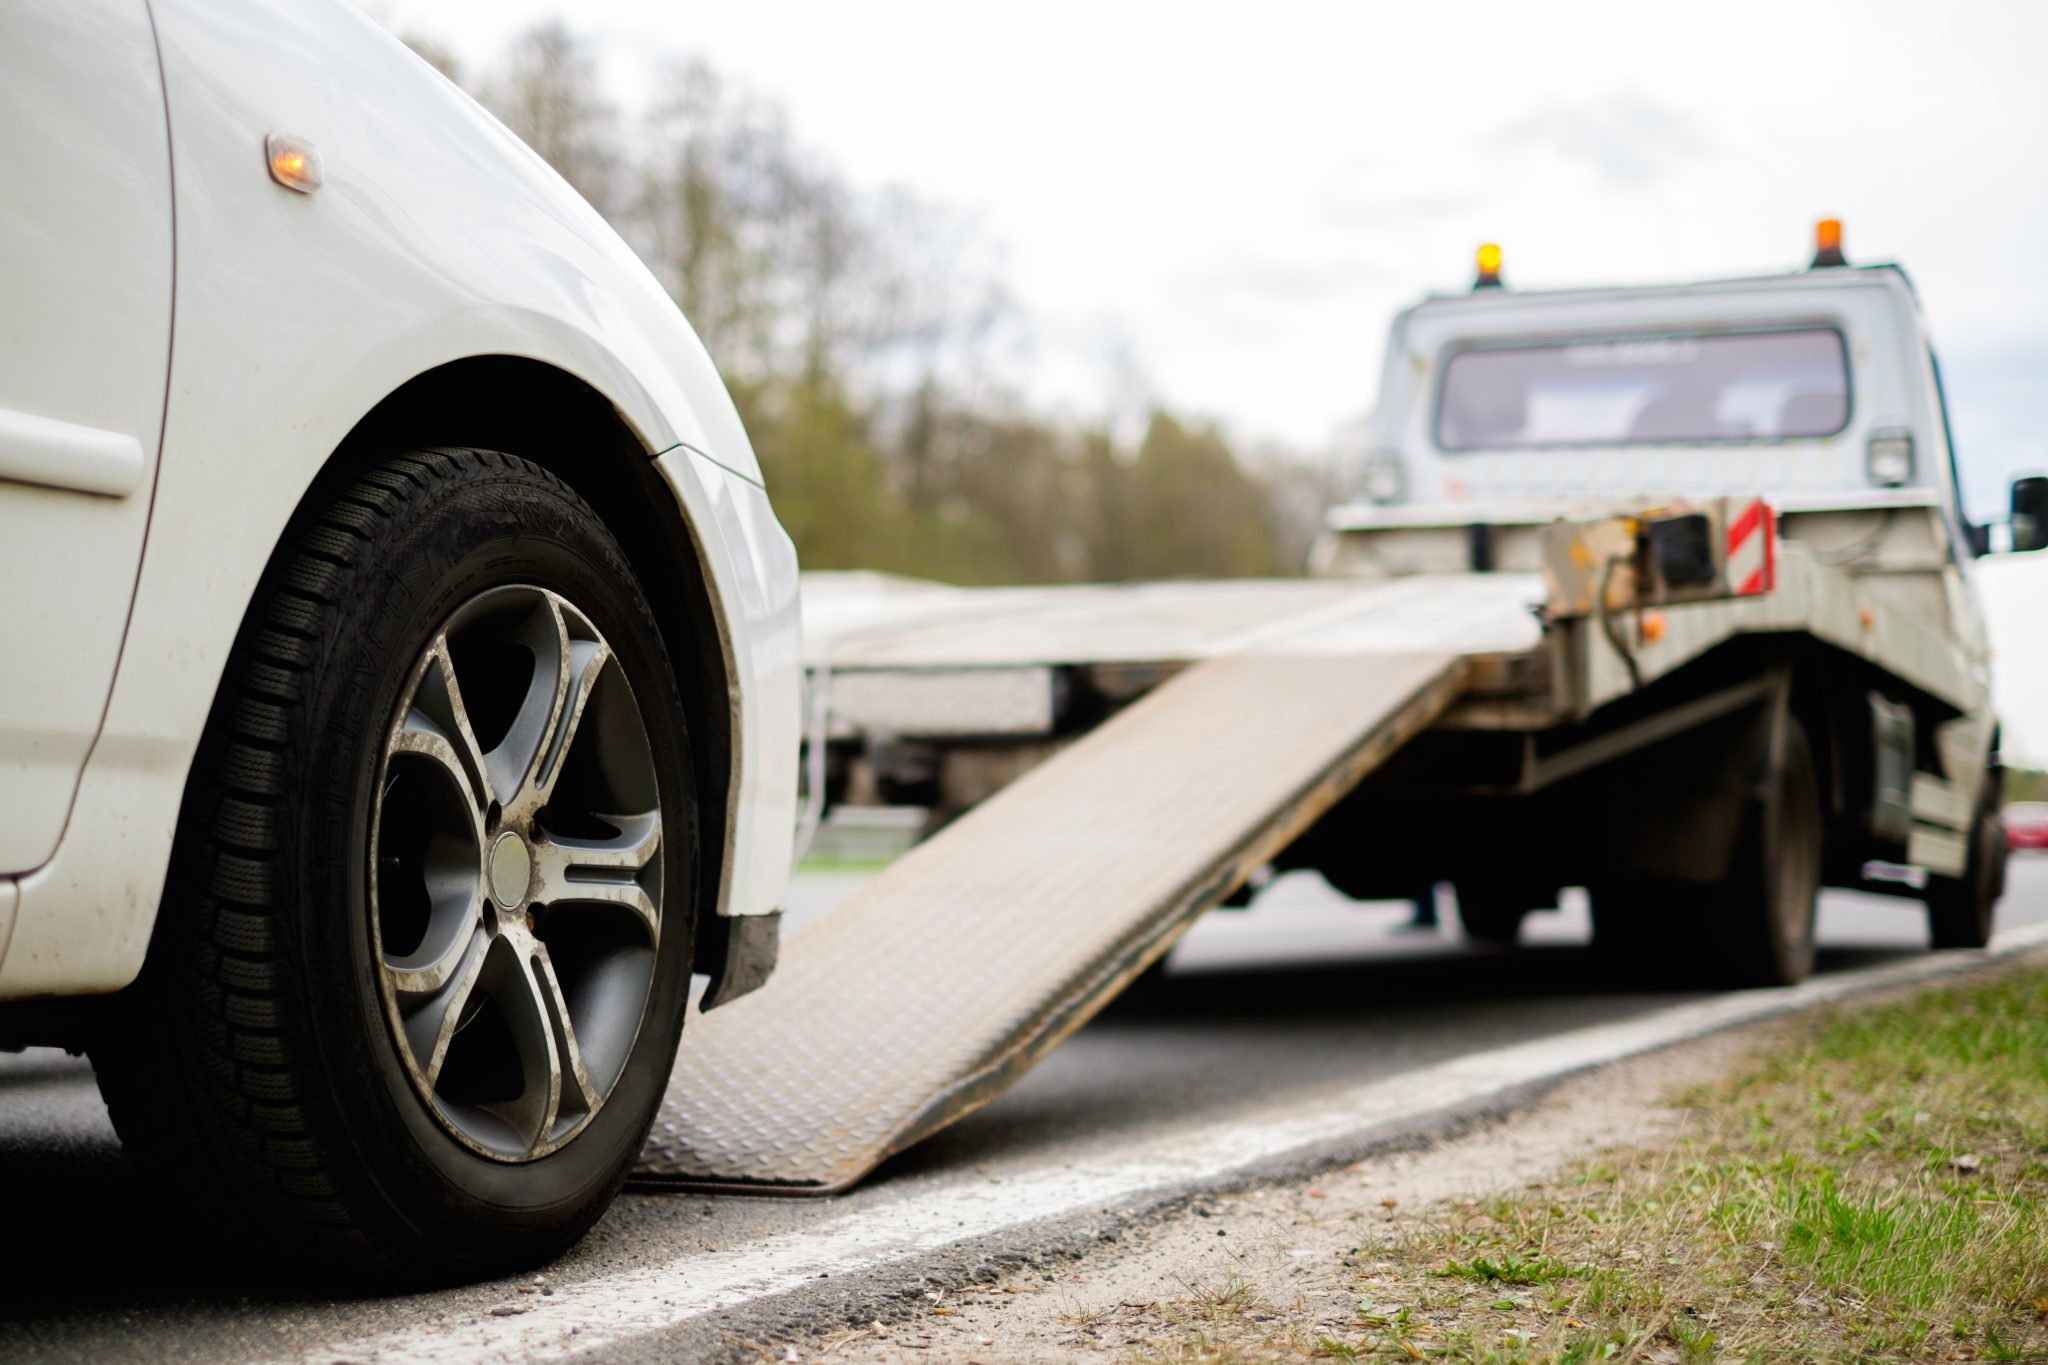 Fast and Best Car Accident Recovery Service in Wigan